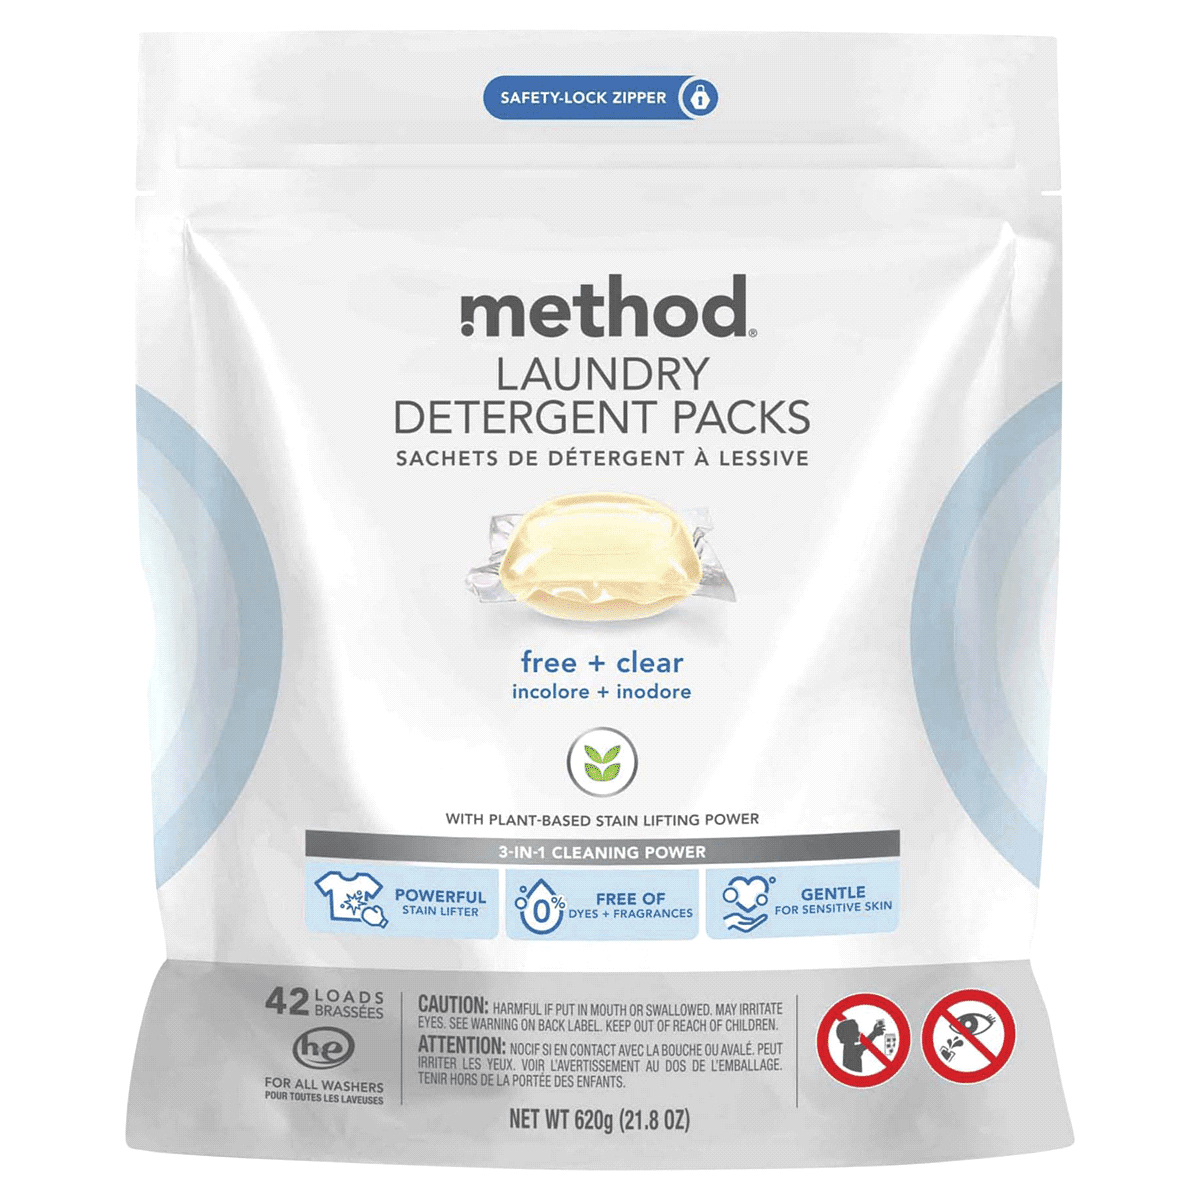 Method Laundry Detergent Packs Free + Clear